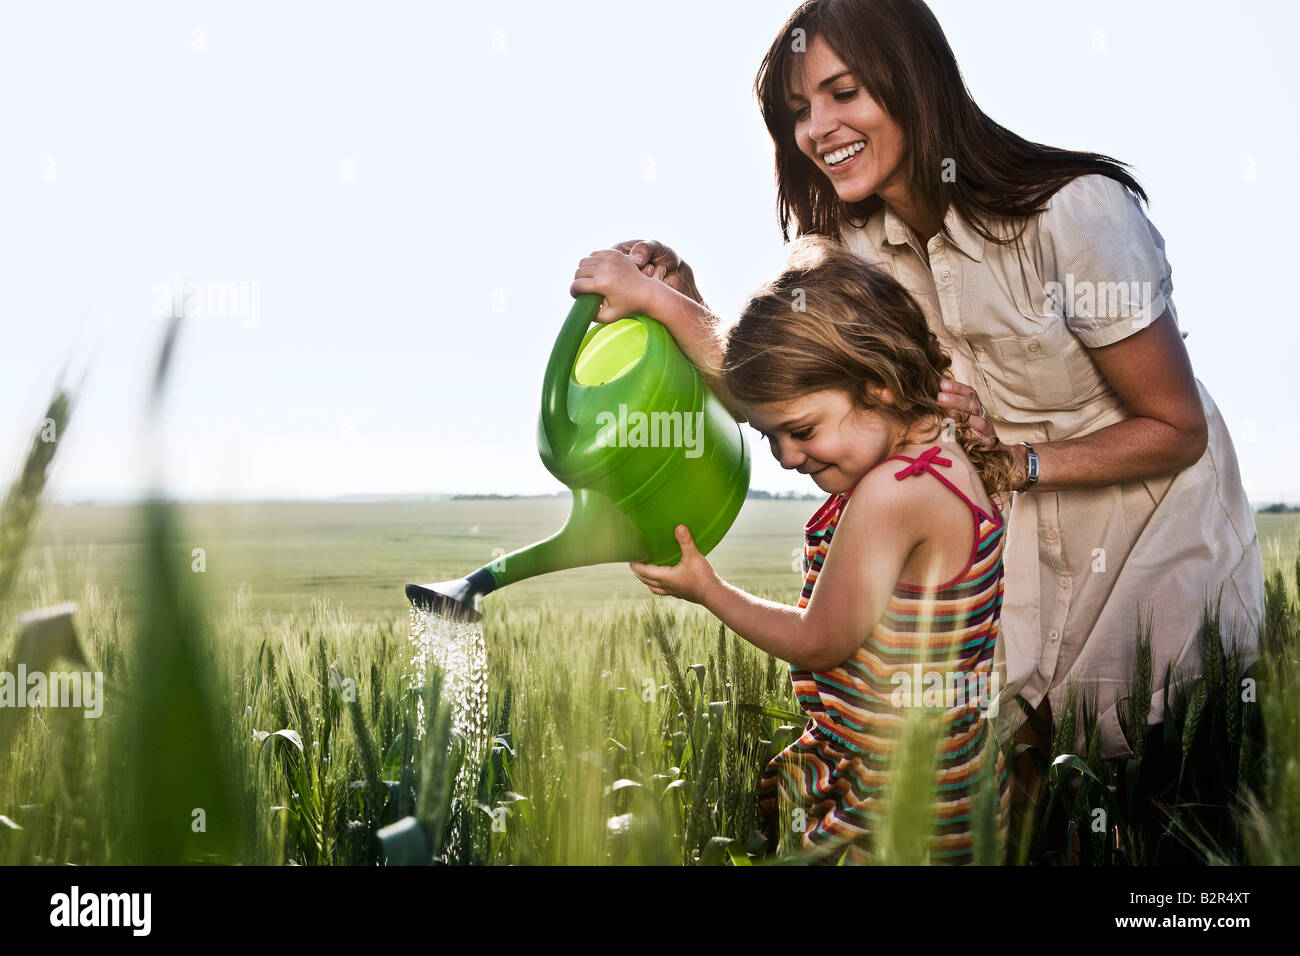 Woman helping child with watering can - Stock Image